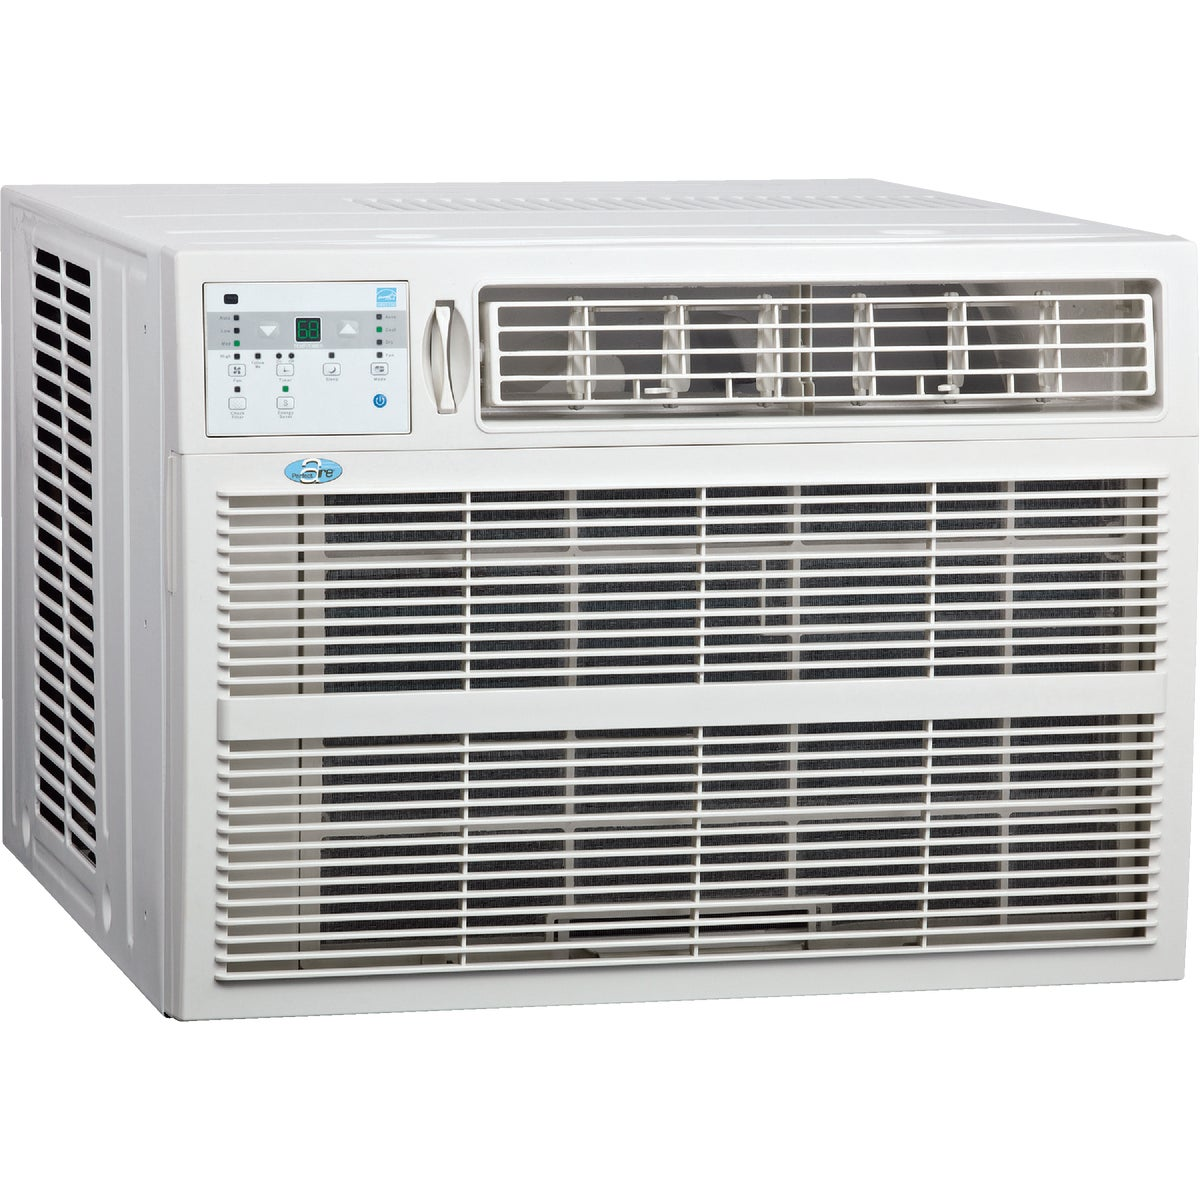 25 000 BTU WINDOW A/C - PAC250000 by Perfect Aire Import